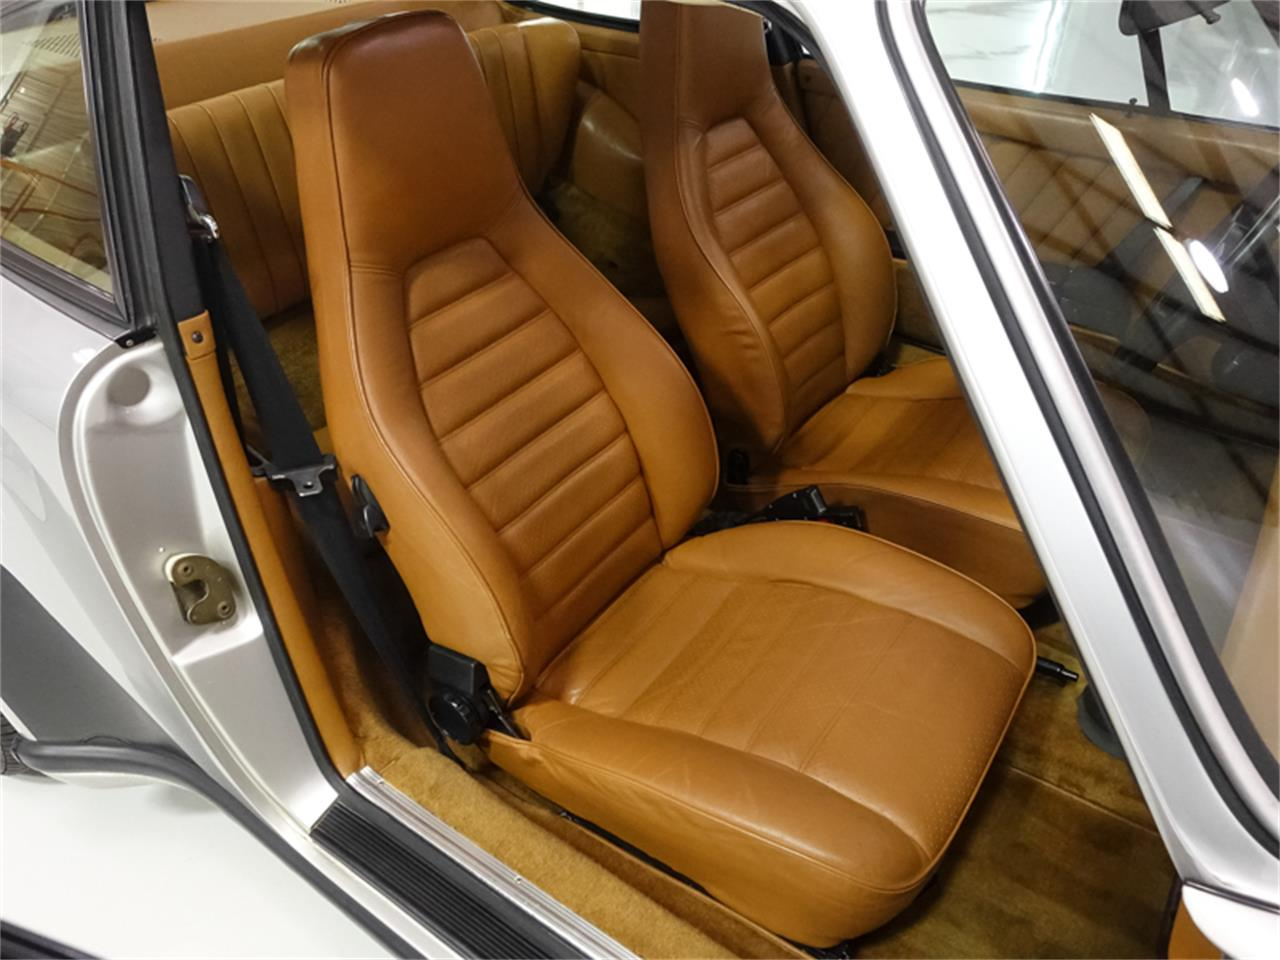 Large Picture of '76 Porsche 930 Turbo located in St Ann Missouri - $229,900.00 - FXKC